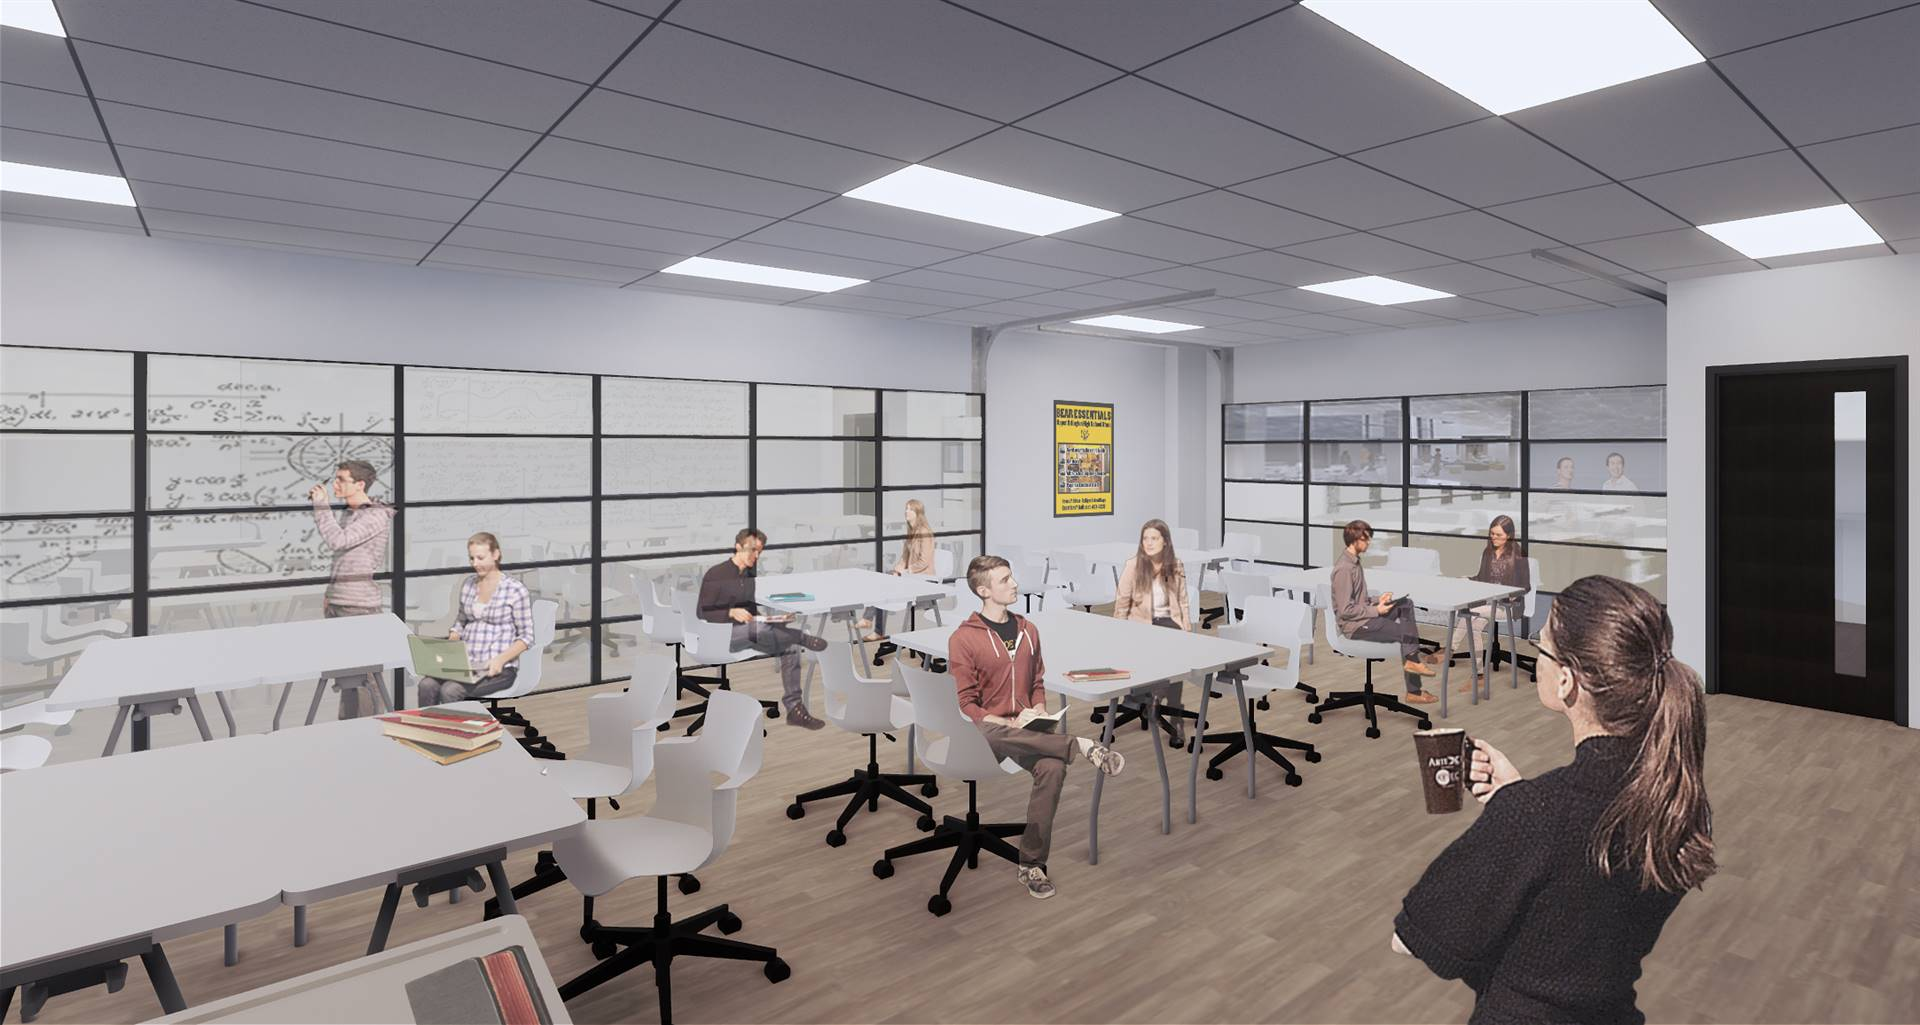 A rendering of a studio classroom